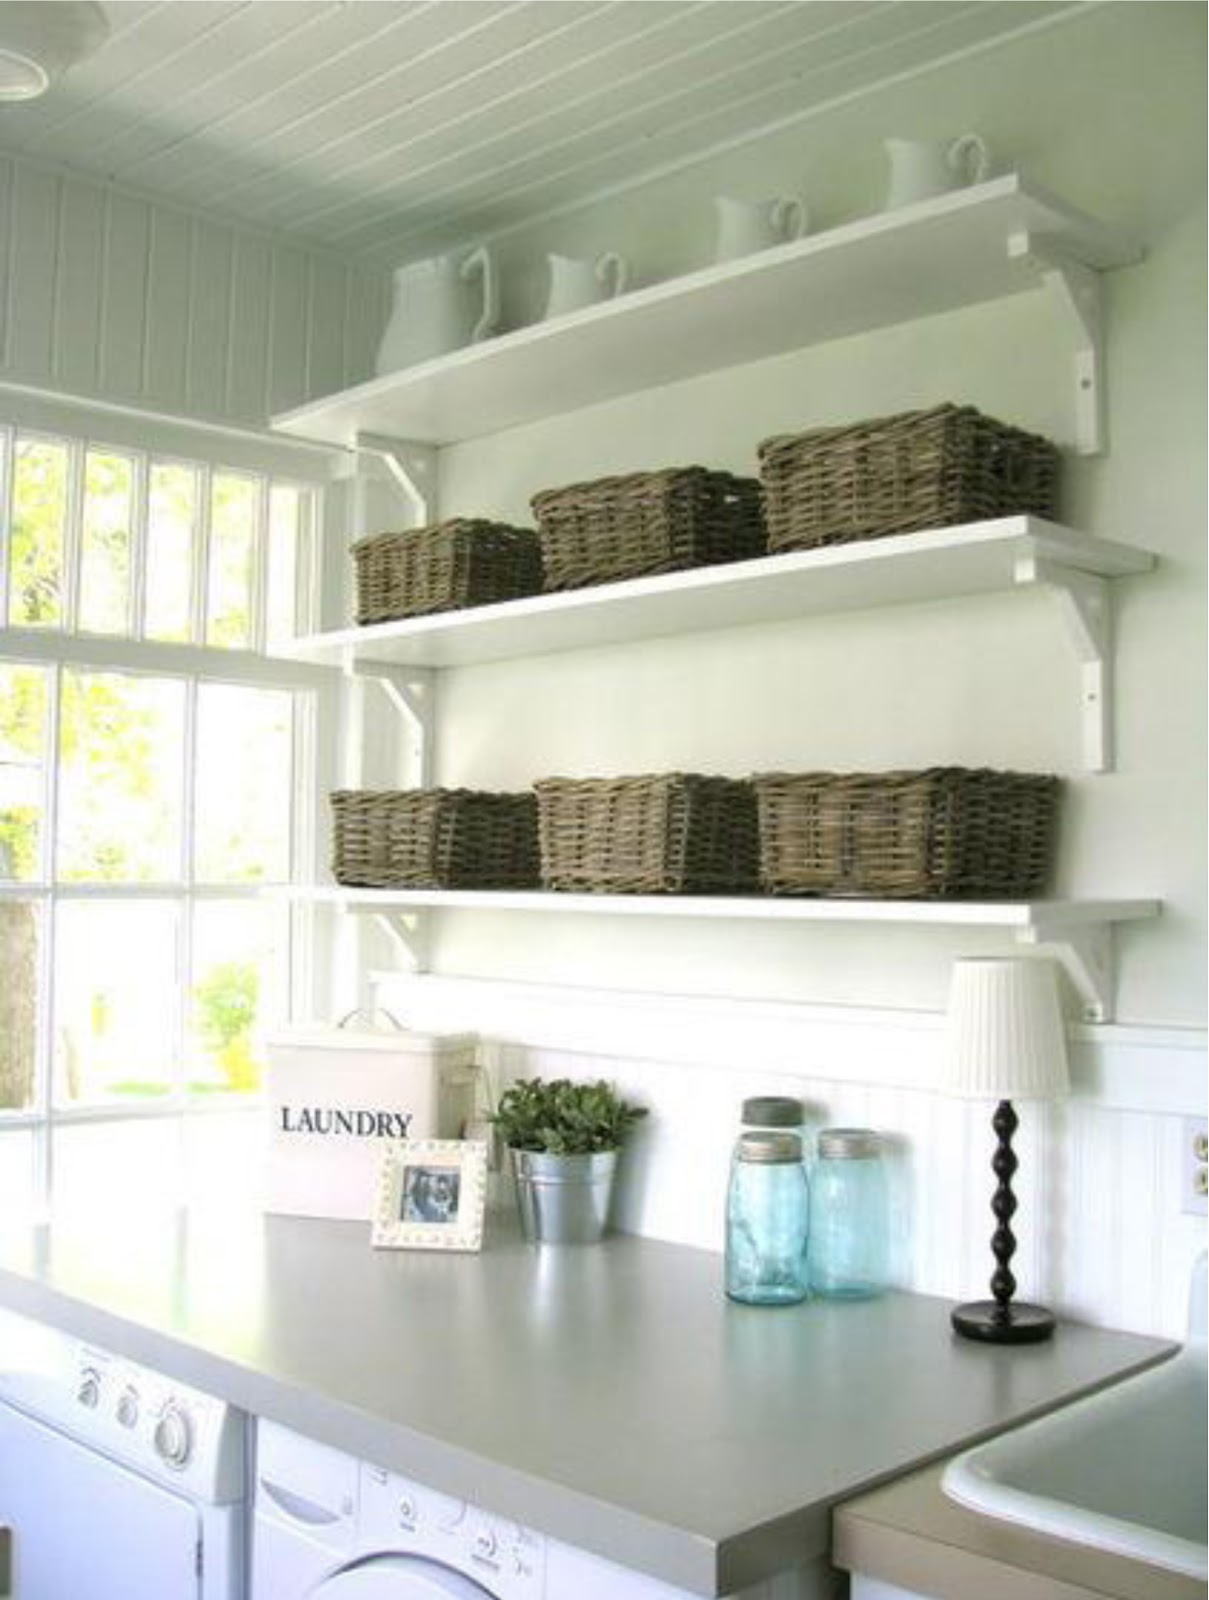 Simplifying Remodeling: Designer's Touch: 10 Tidy Laundry ... on Laundry Room Shelves Ideas  id=61988